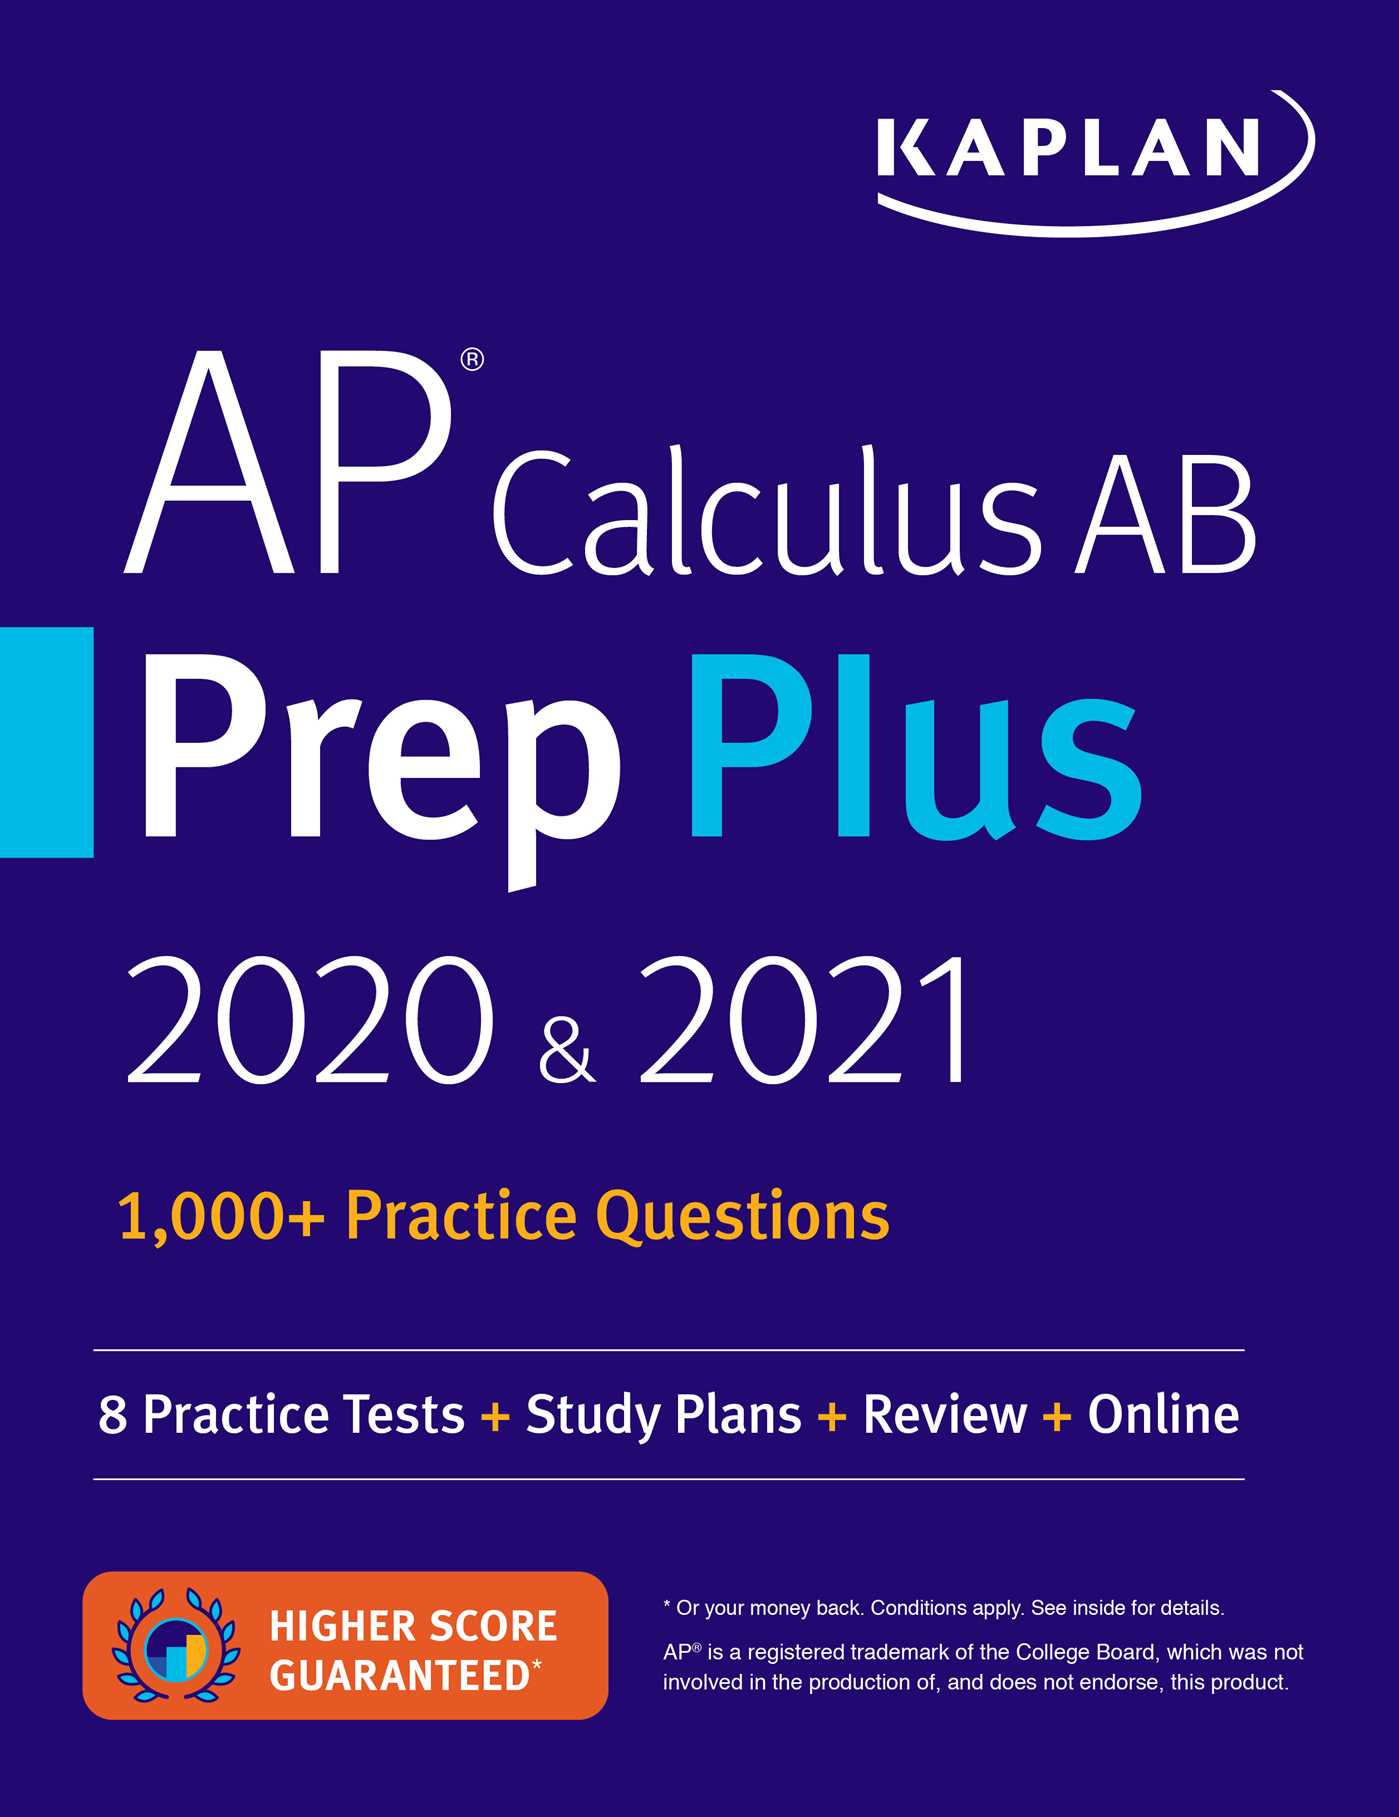 AP Calculus AB Prep Plus 2020 & 2021